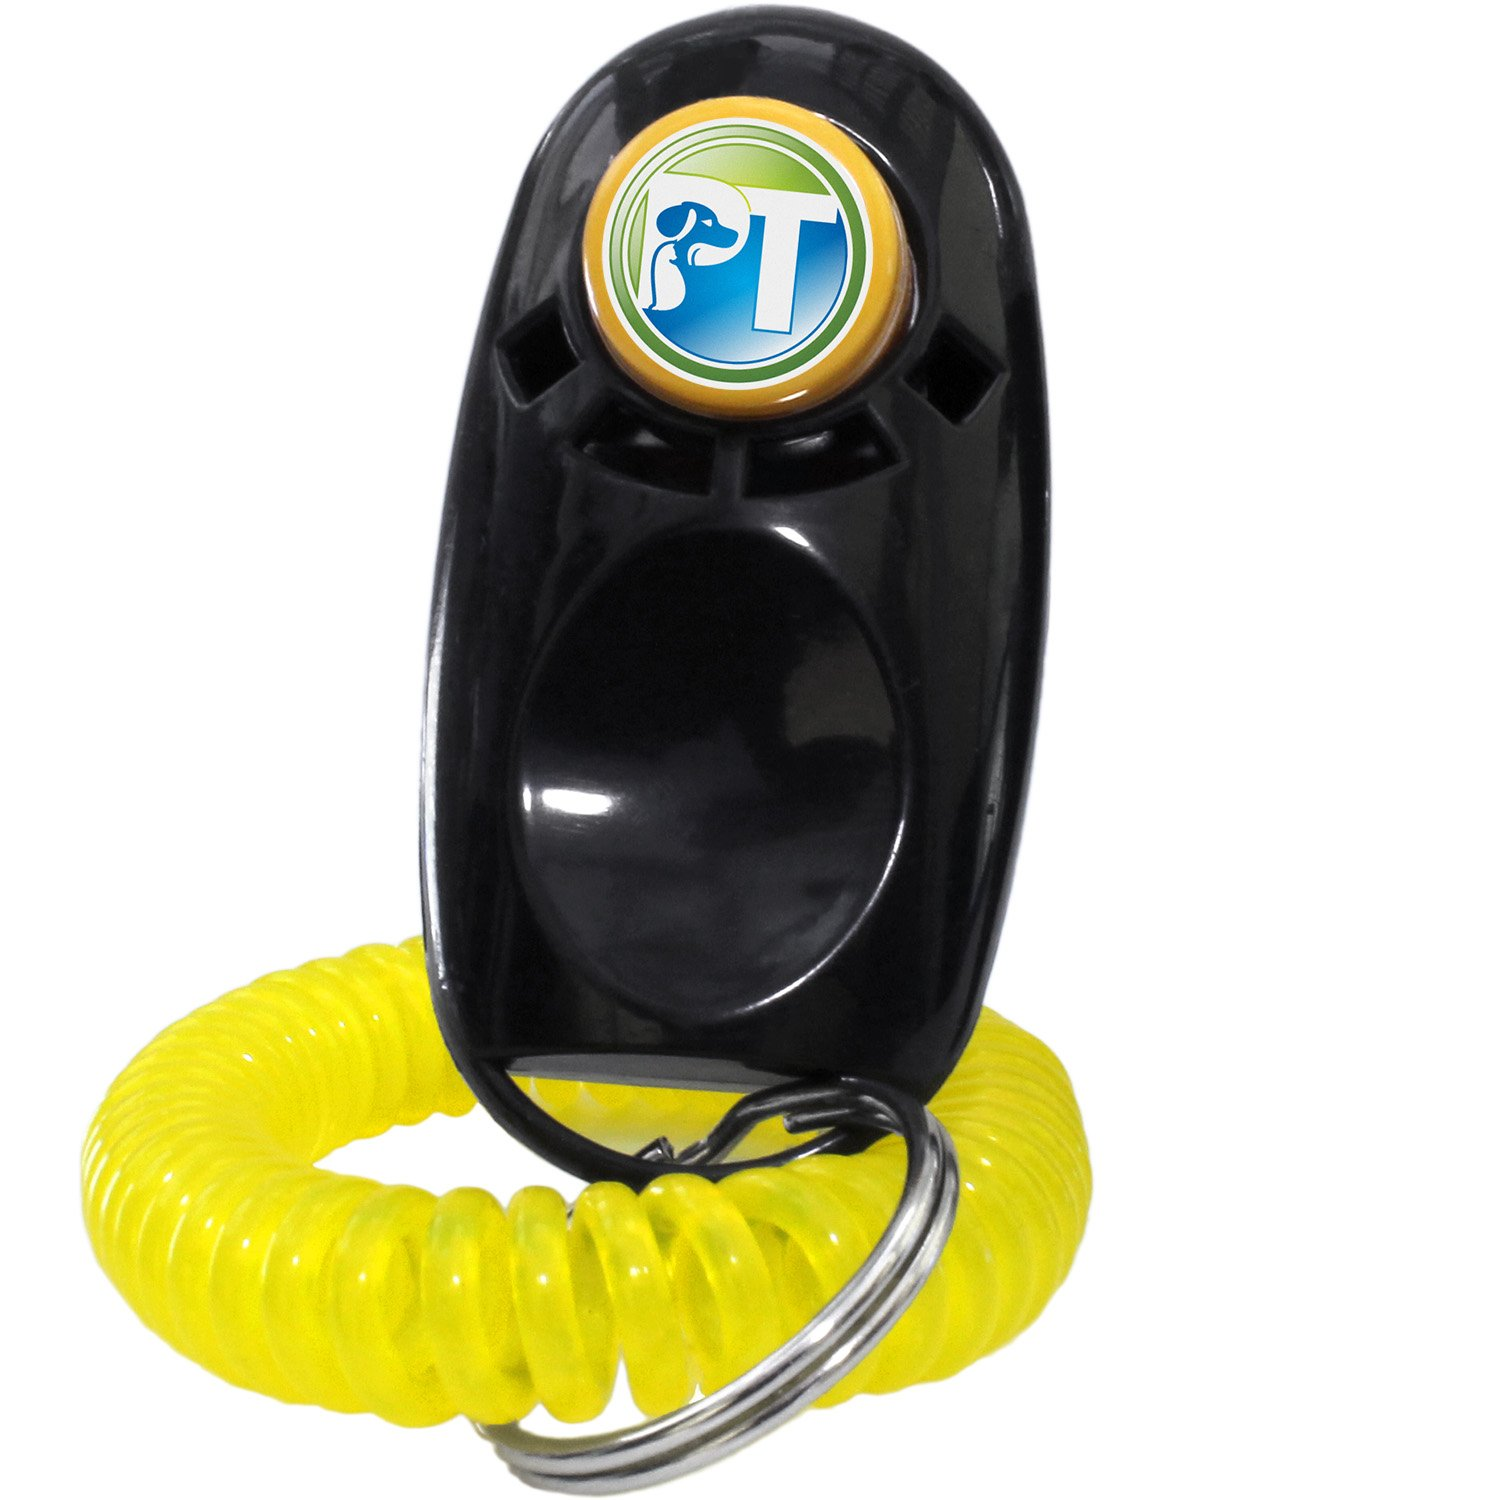 Dogtra 1900S Remote Training Collar - 3/4 Mile Range, Waterproof, Rechargeable, Shock, Vibration - includes PetsTEK Dog Training Clicker by Dogtra (Image #8)